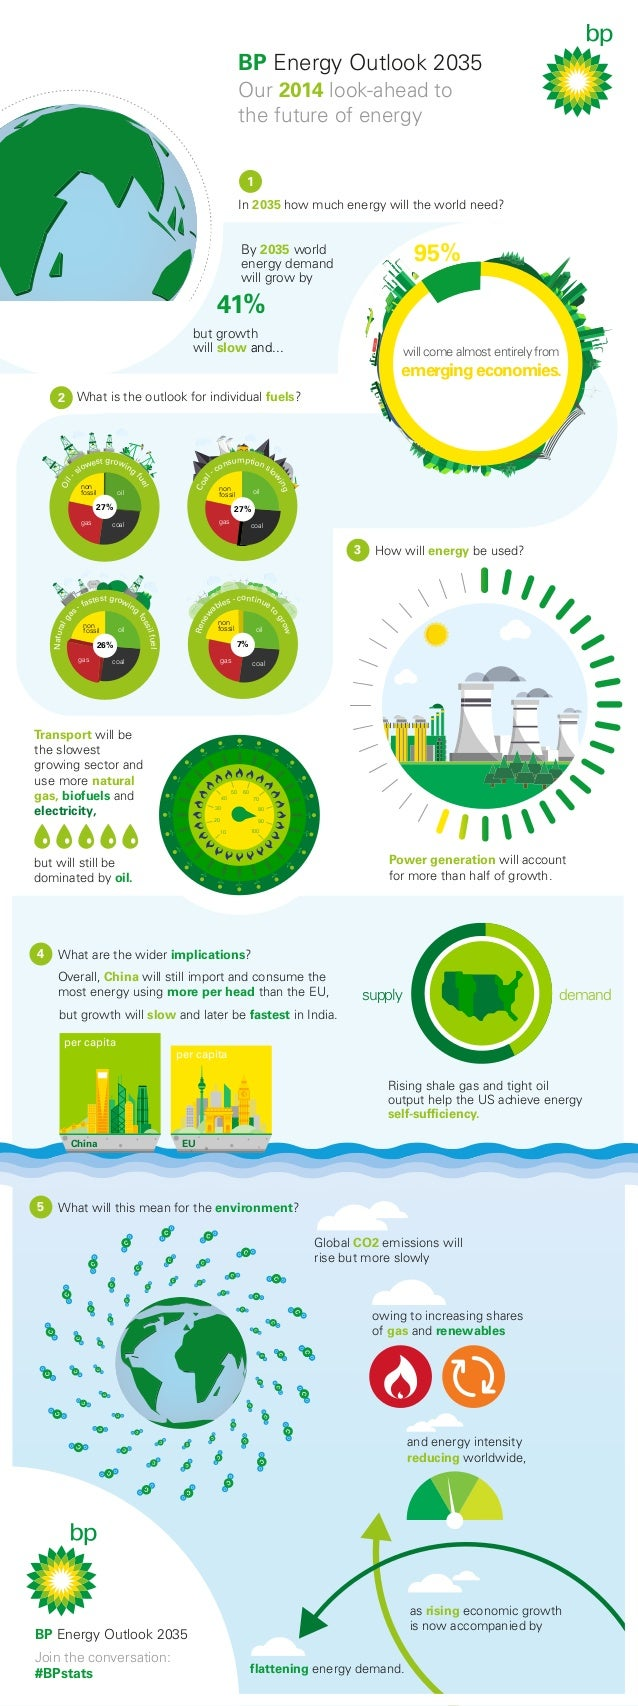 BP Energy Outlook 2035 Our 2014 look-ahead to the future of energy 1 In 2035 how much energy will the world need?  95%  By...